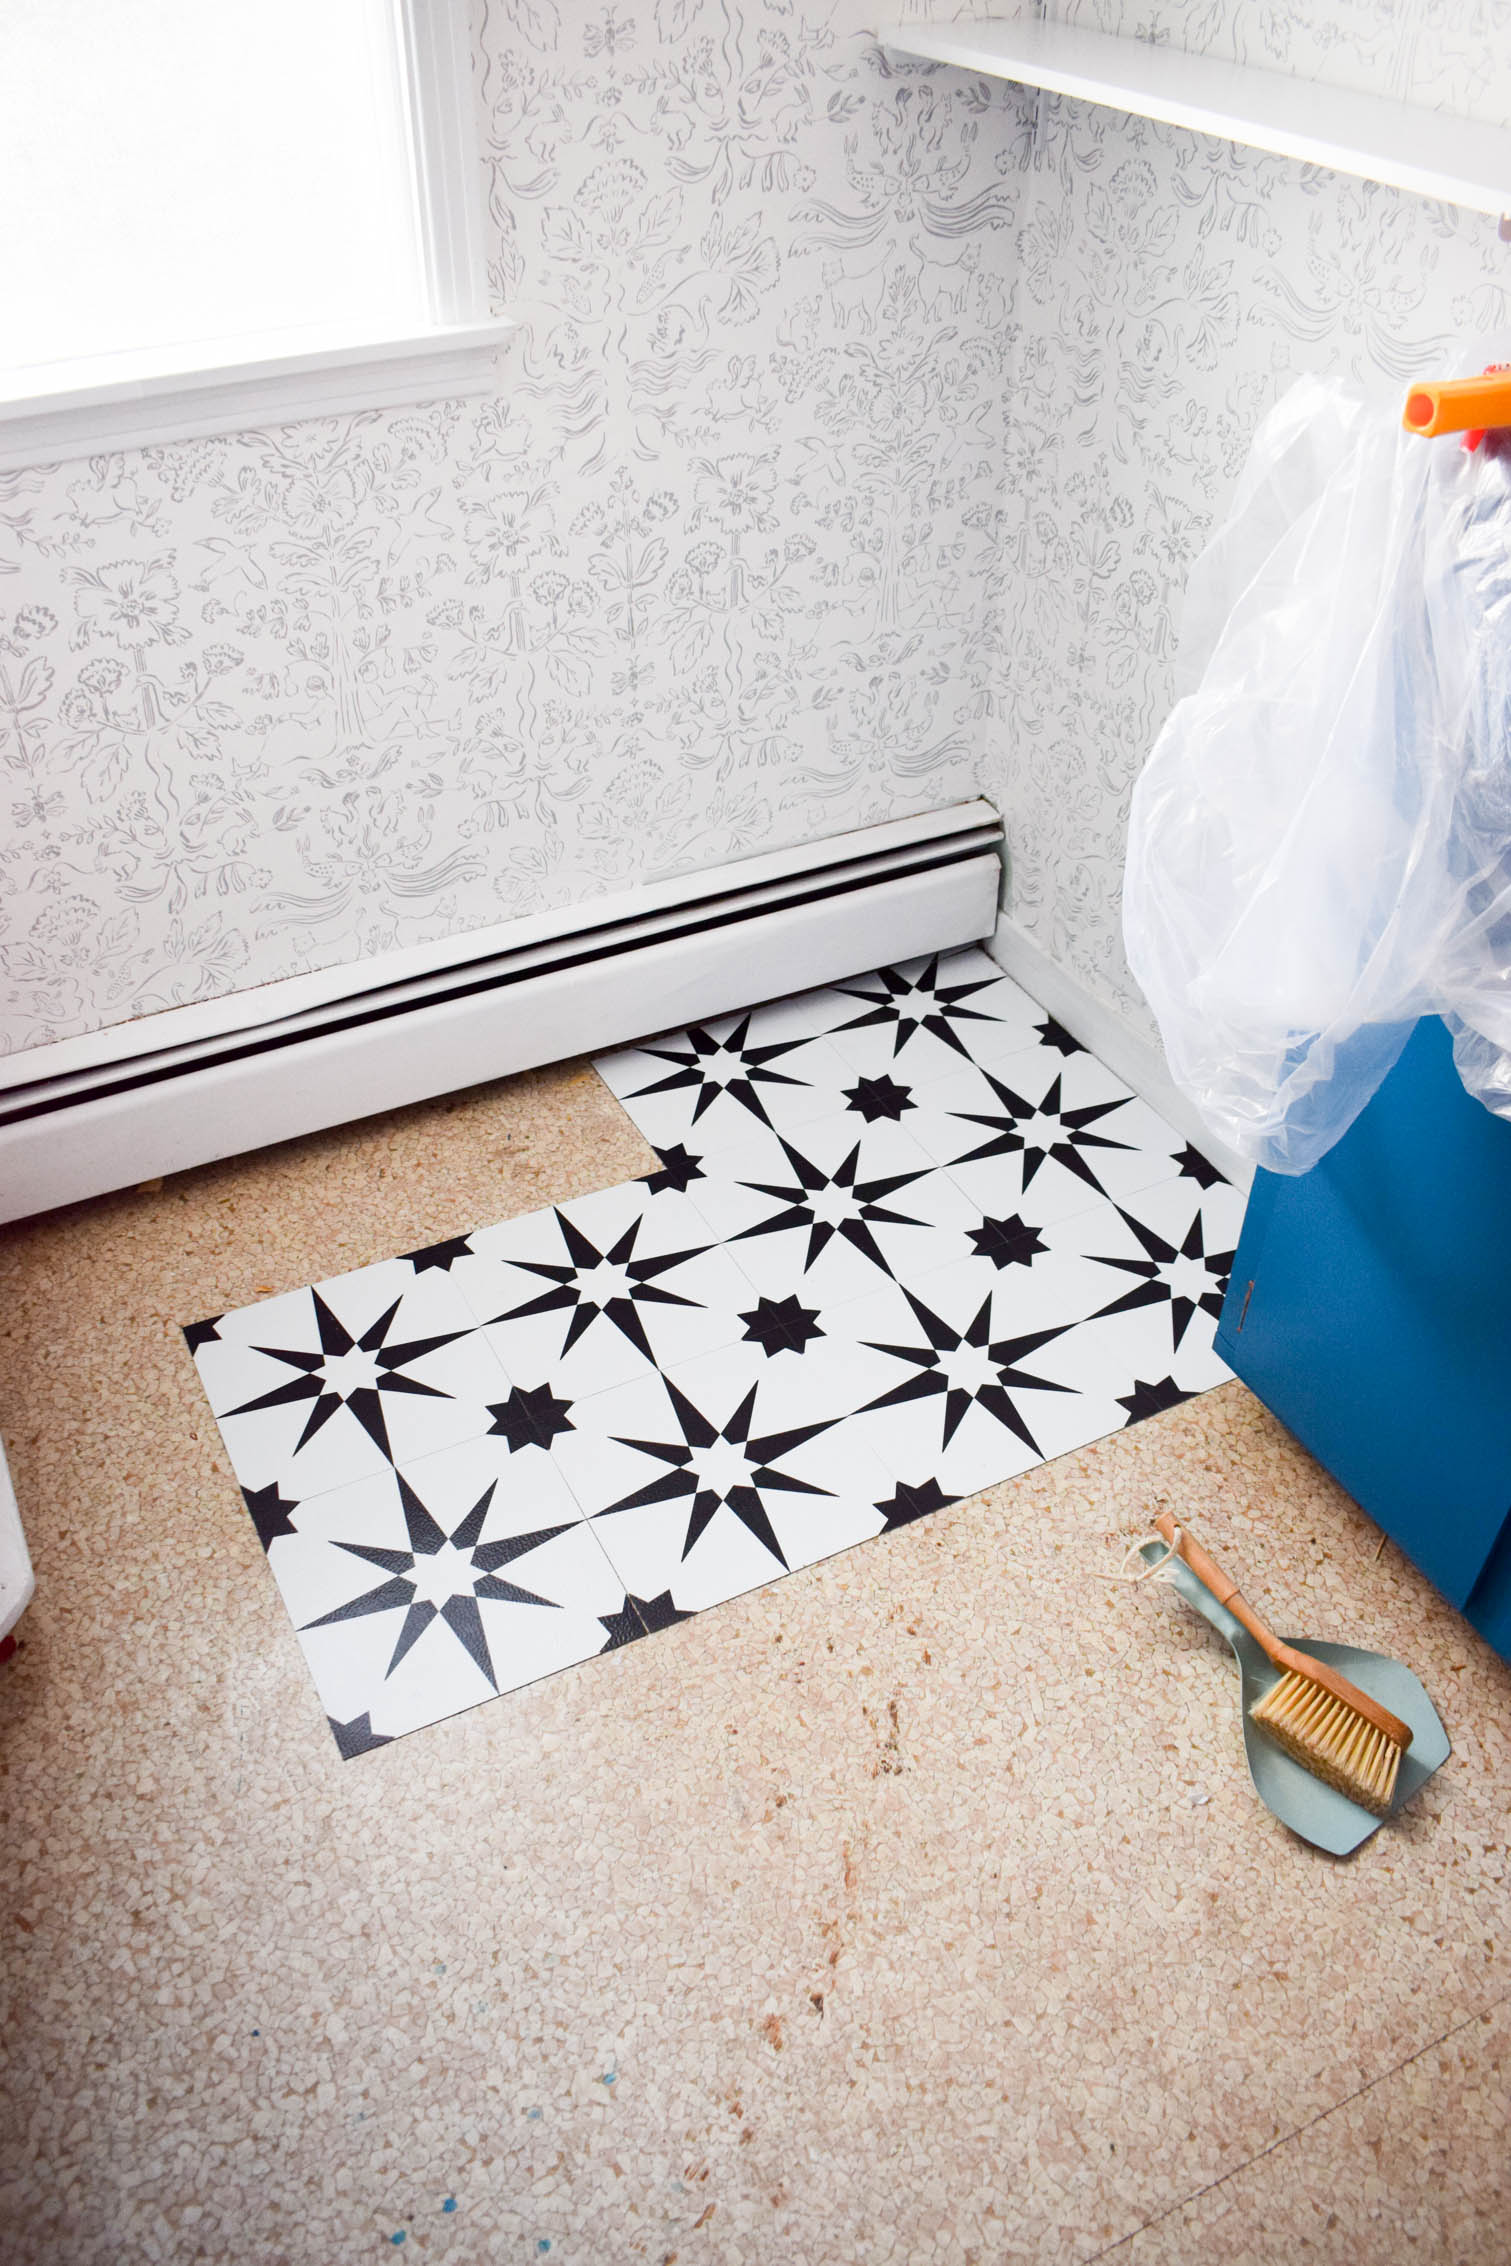 Peel and stick floor tiles are here, and they are the future! They're the perfect solution for renters, budget constraints, or if you just want a new look without the hassle of mortar and grout. My tips on How to install peel and stick floor tiles will show you how easy it is.